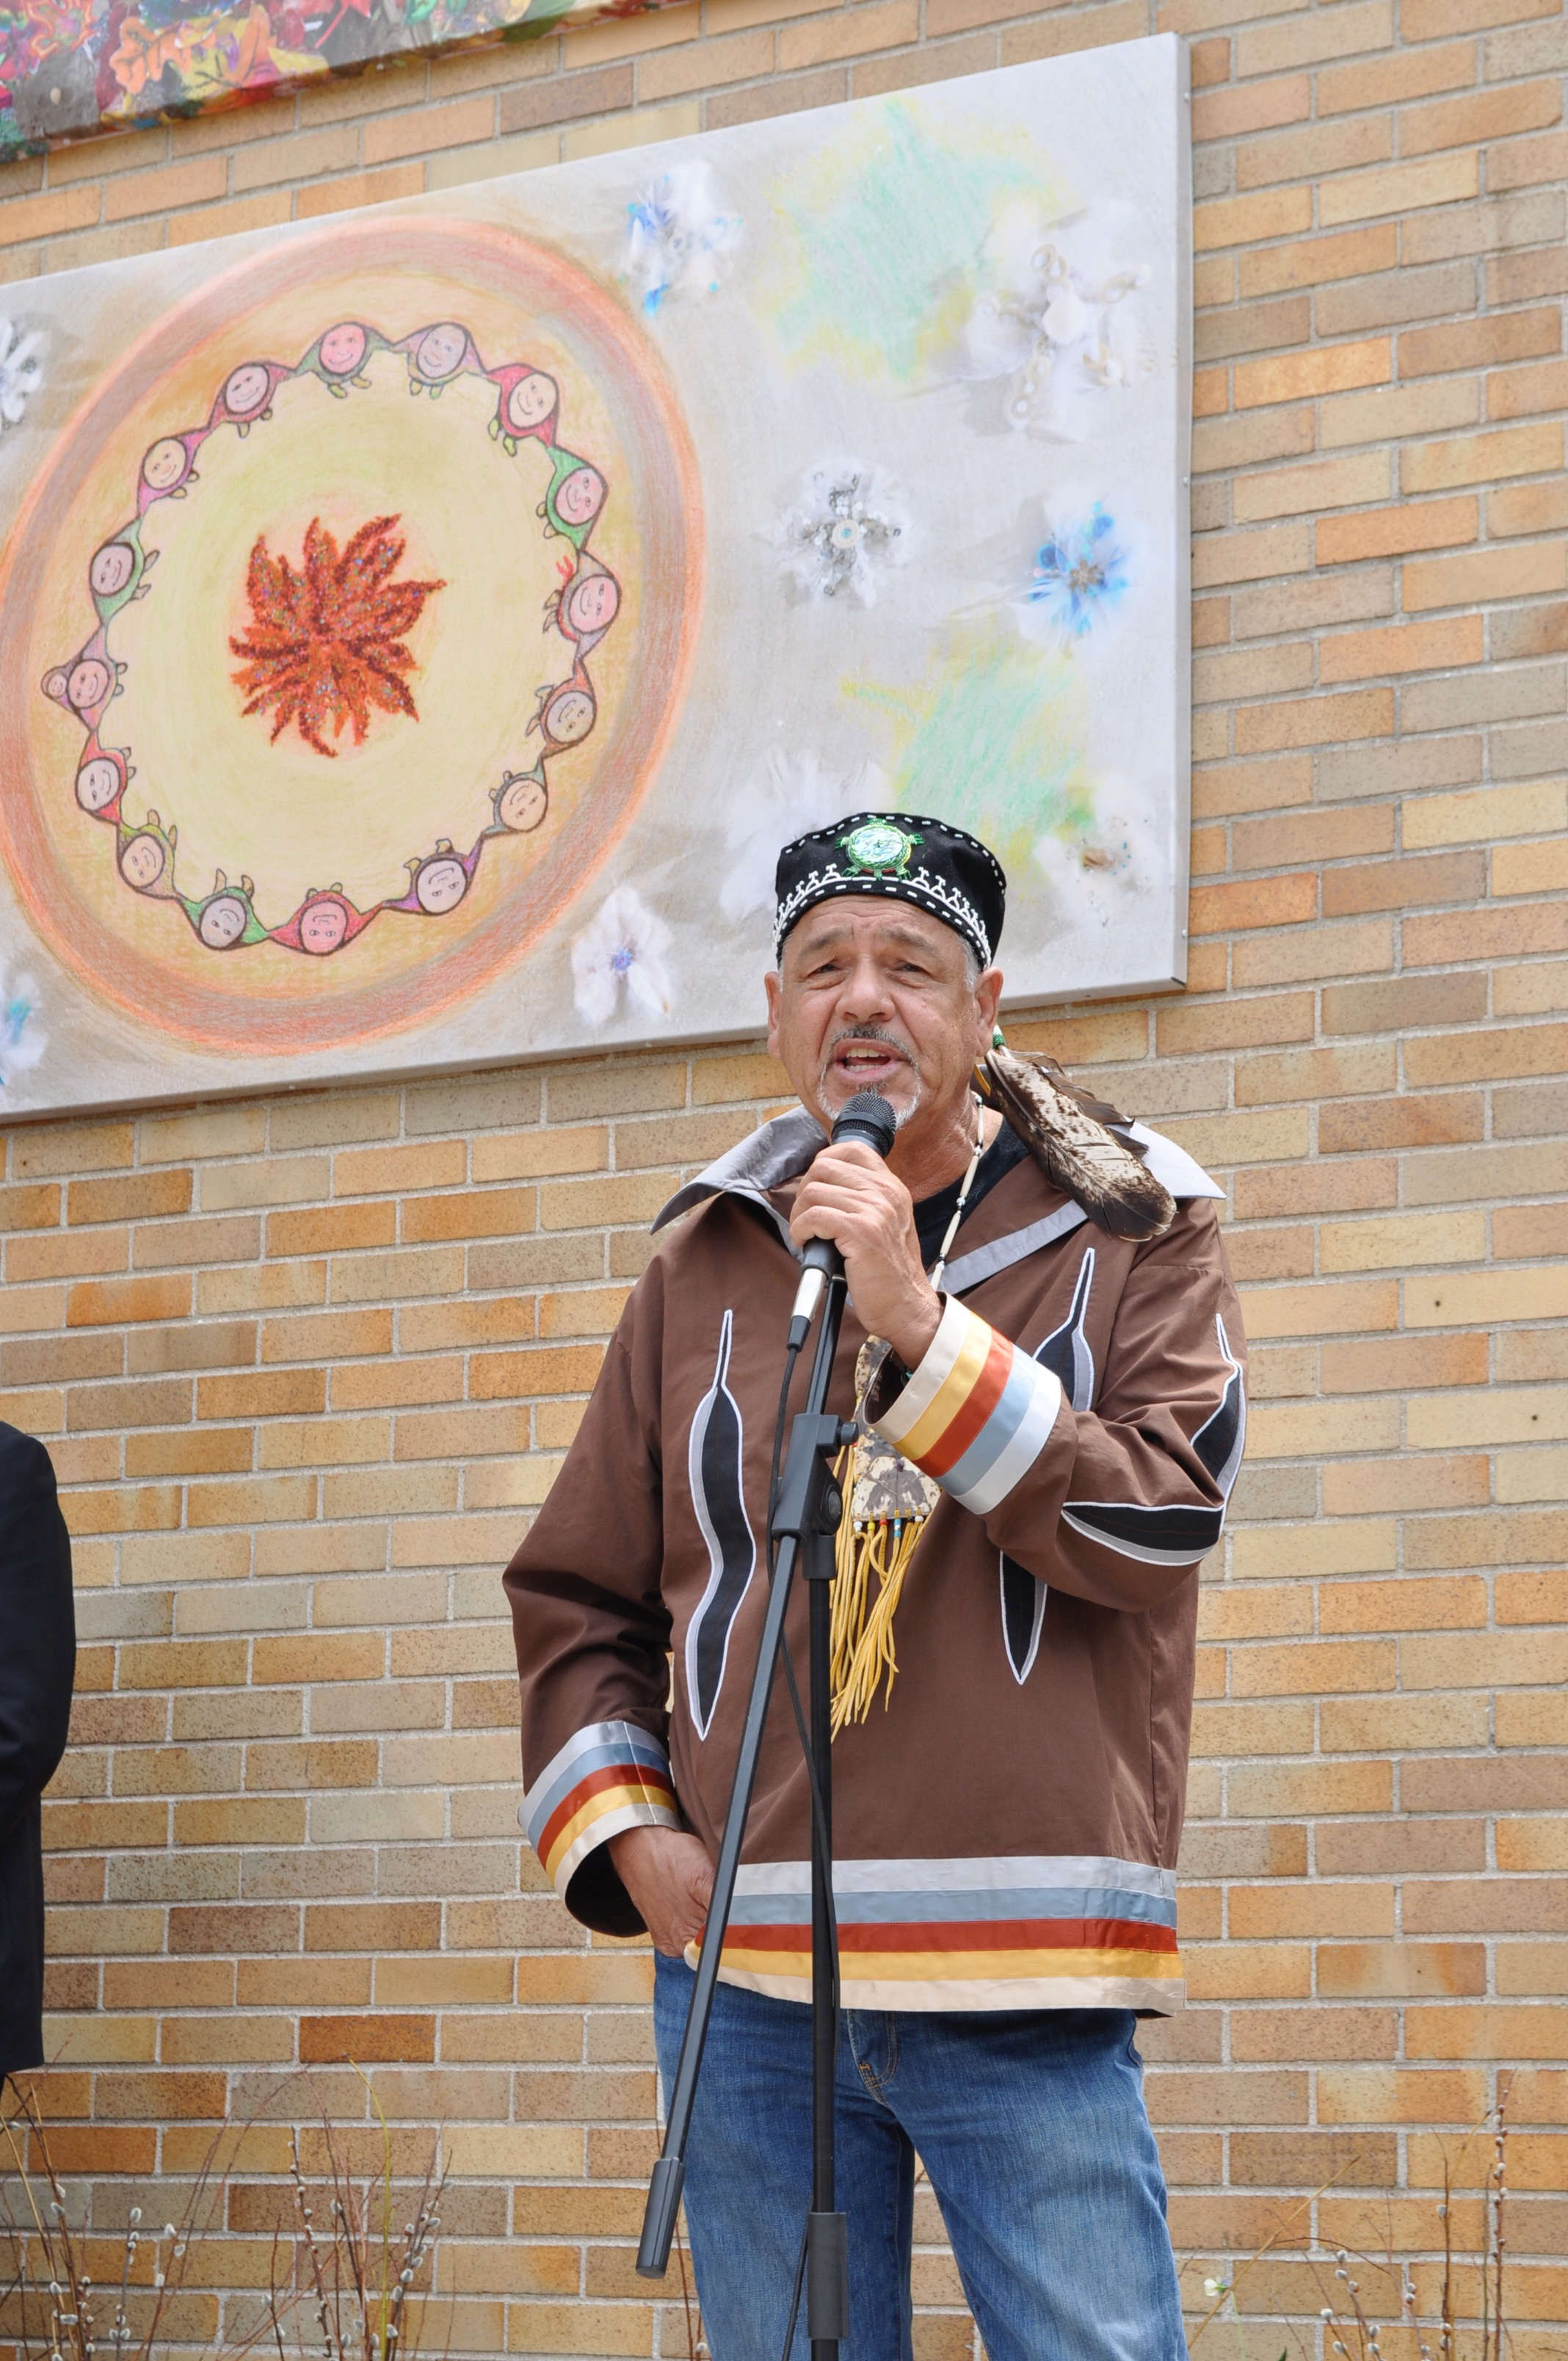 Elder Albert Dumont - Algonquin Spiritual Advisor and artist, engaged Pleasant Park School students in creating a four-panel mural representing the four seasons. His contribution helped us create a lasting symbol of unity in our home community.